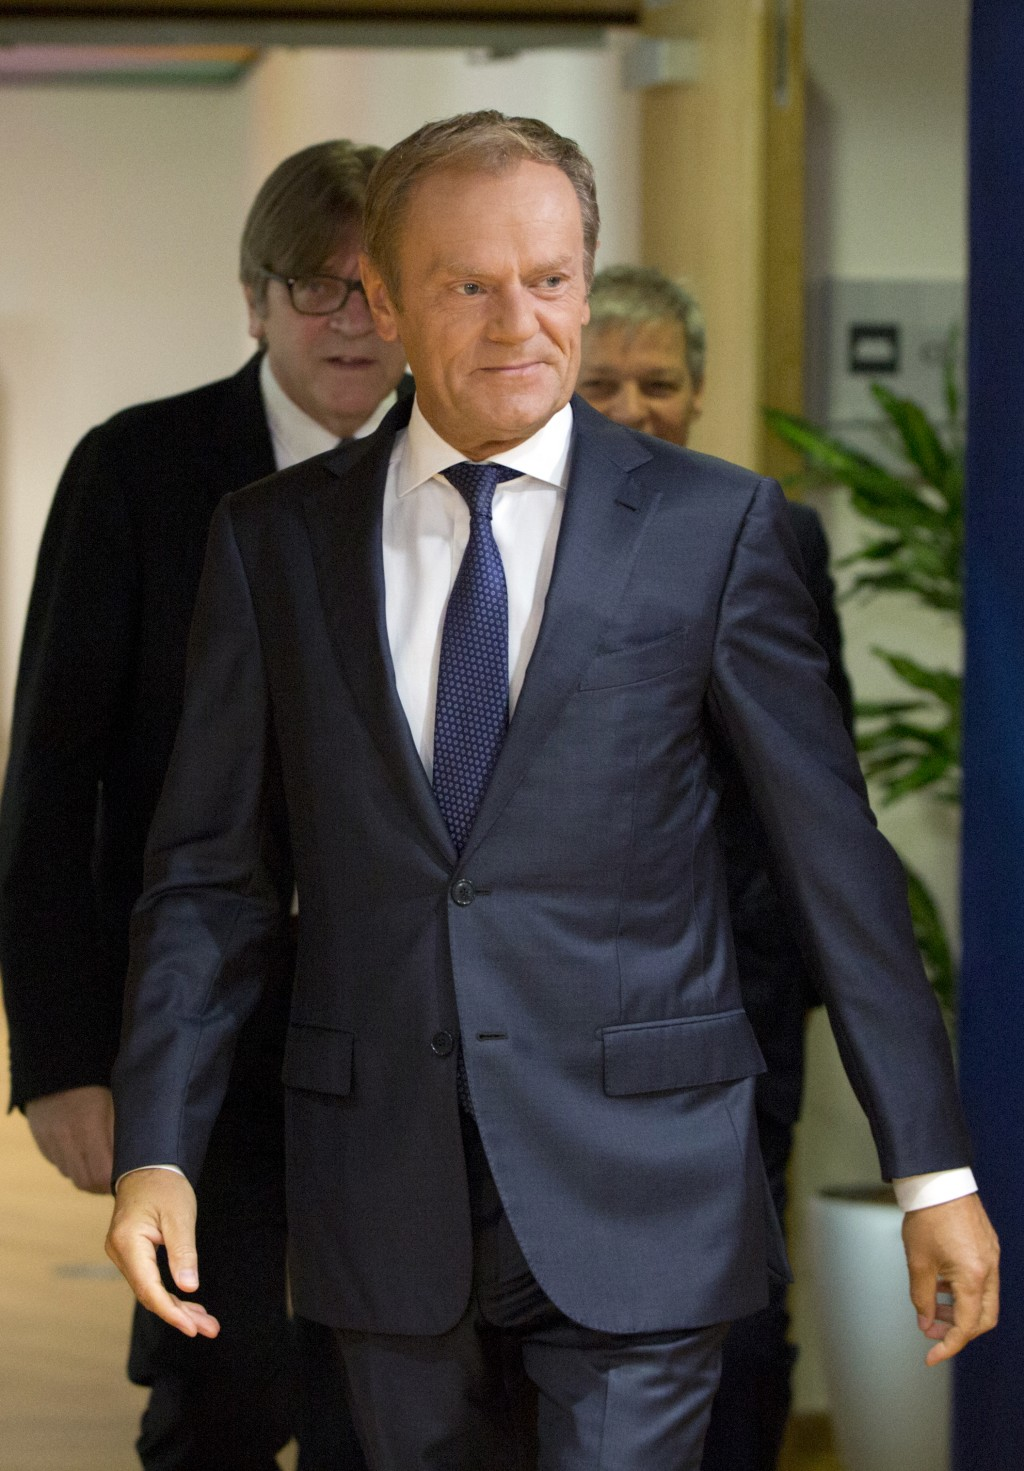 European Council President Donald Tusk, center, arrives with Renew Europe party members Guy Verhofstadt, left, and Daclan Ciolos, right, prior to a me...